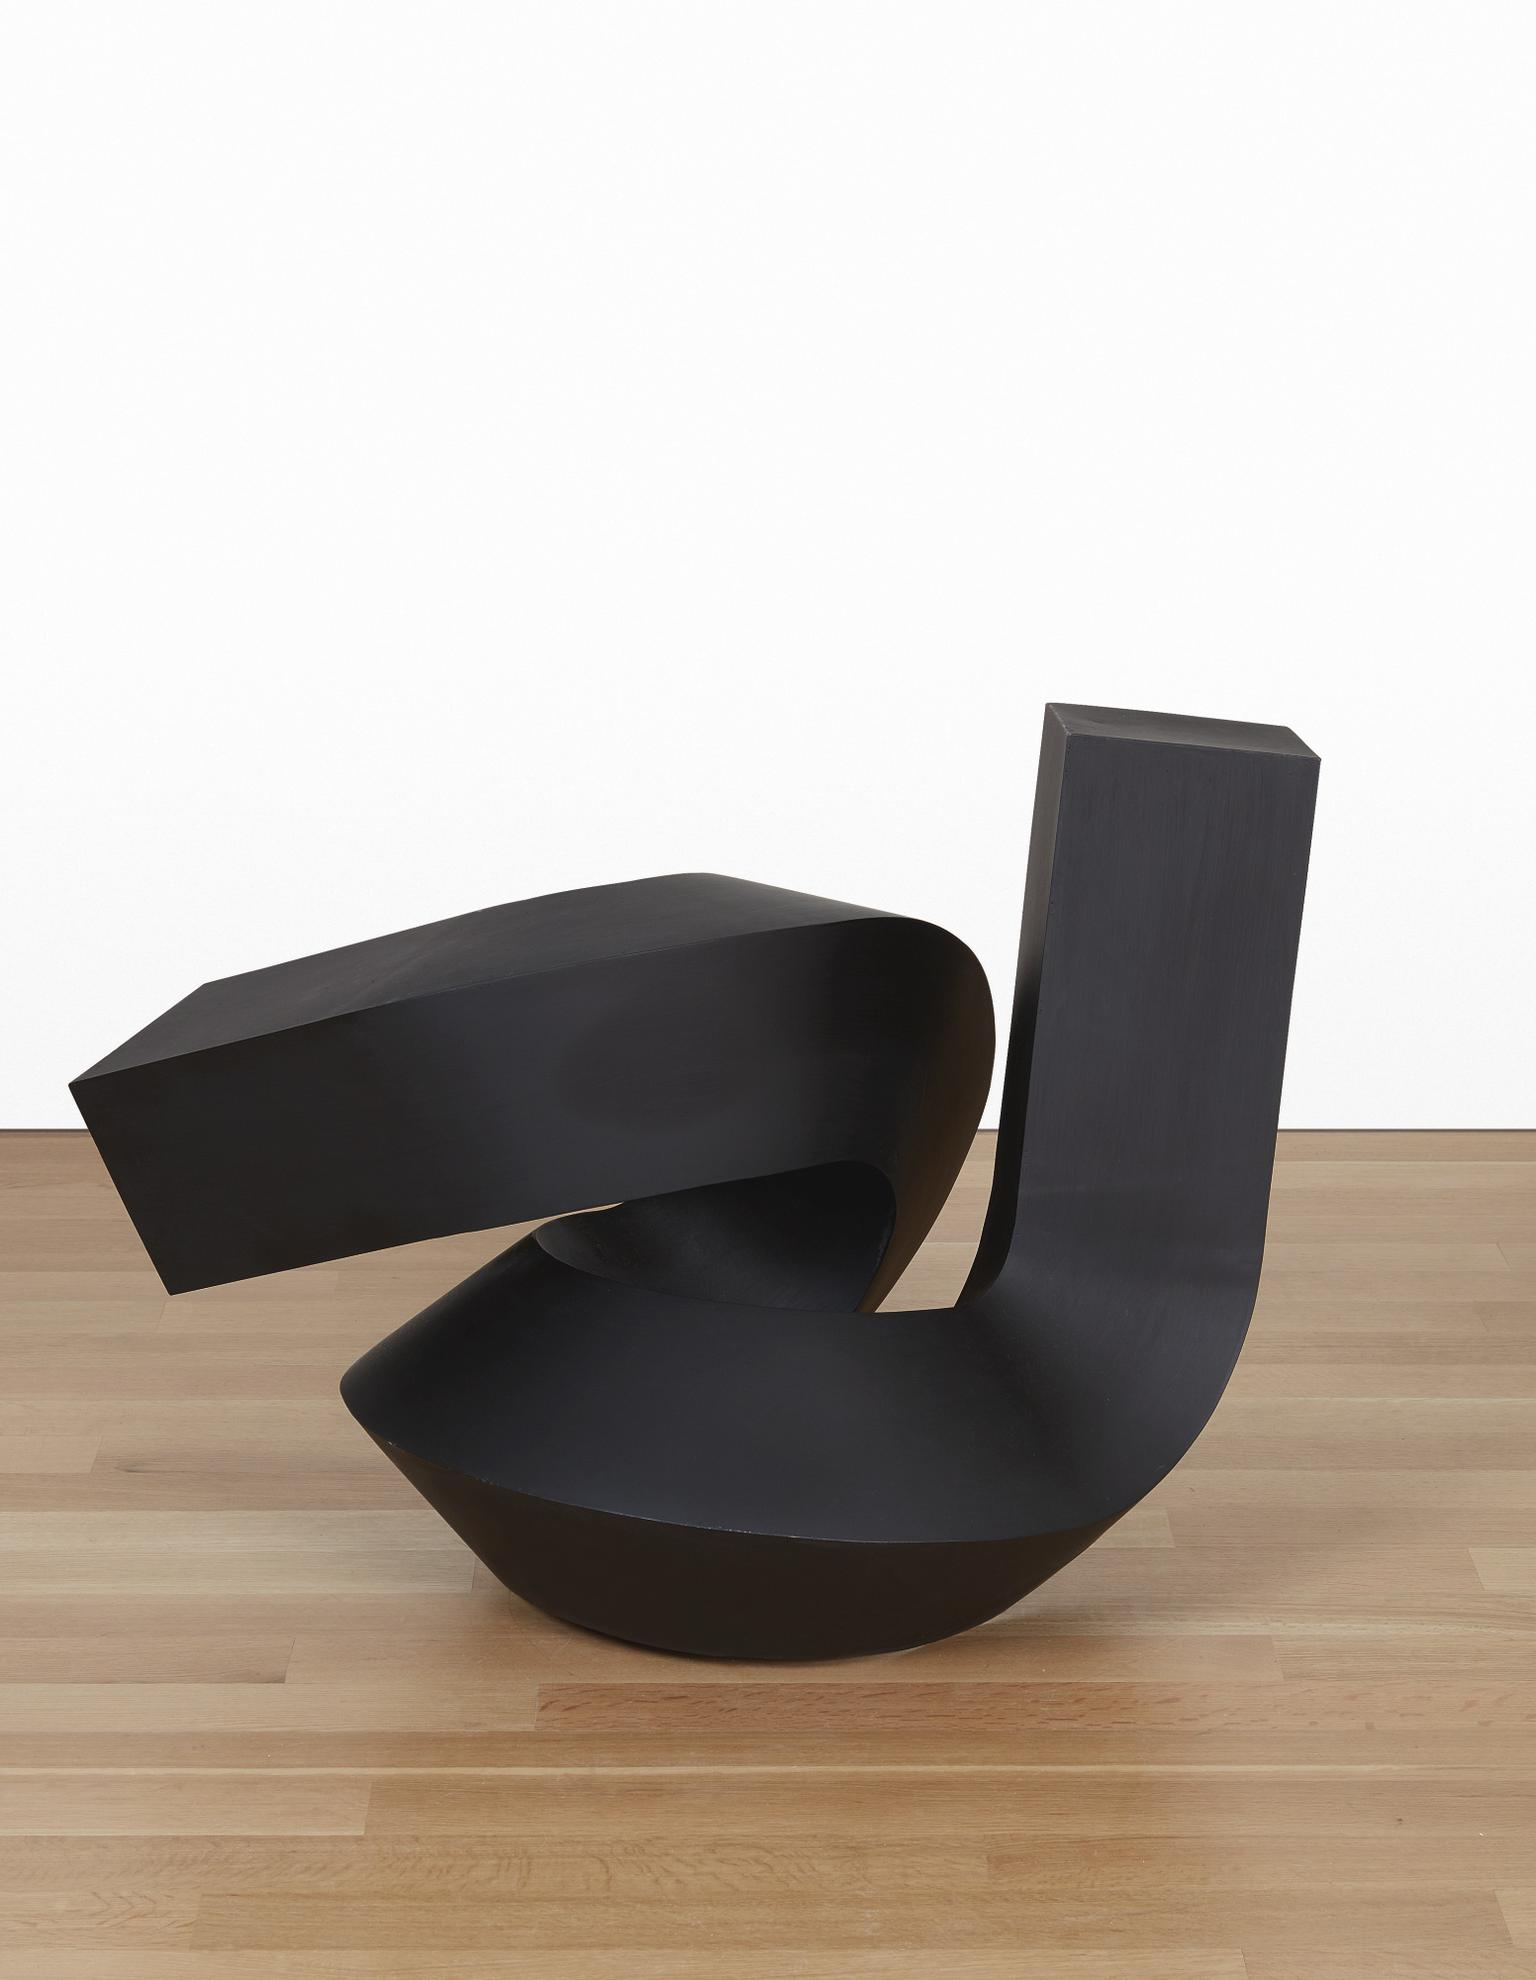 Clement Meadmore-Around And About-1971